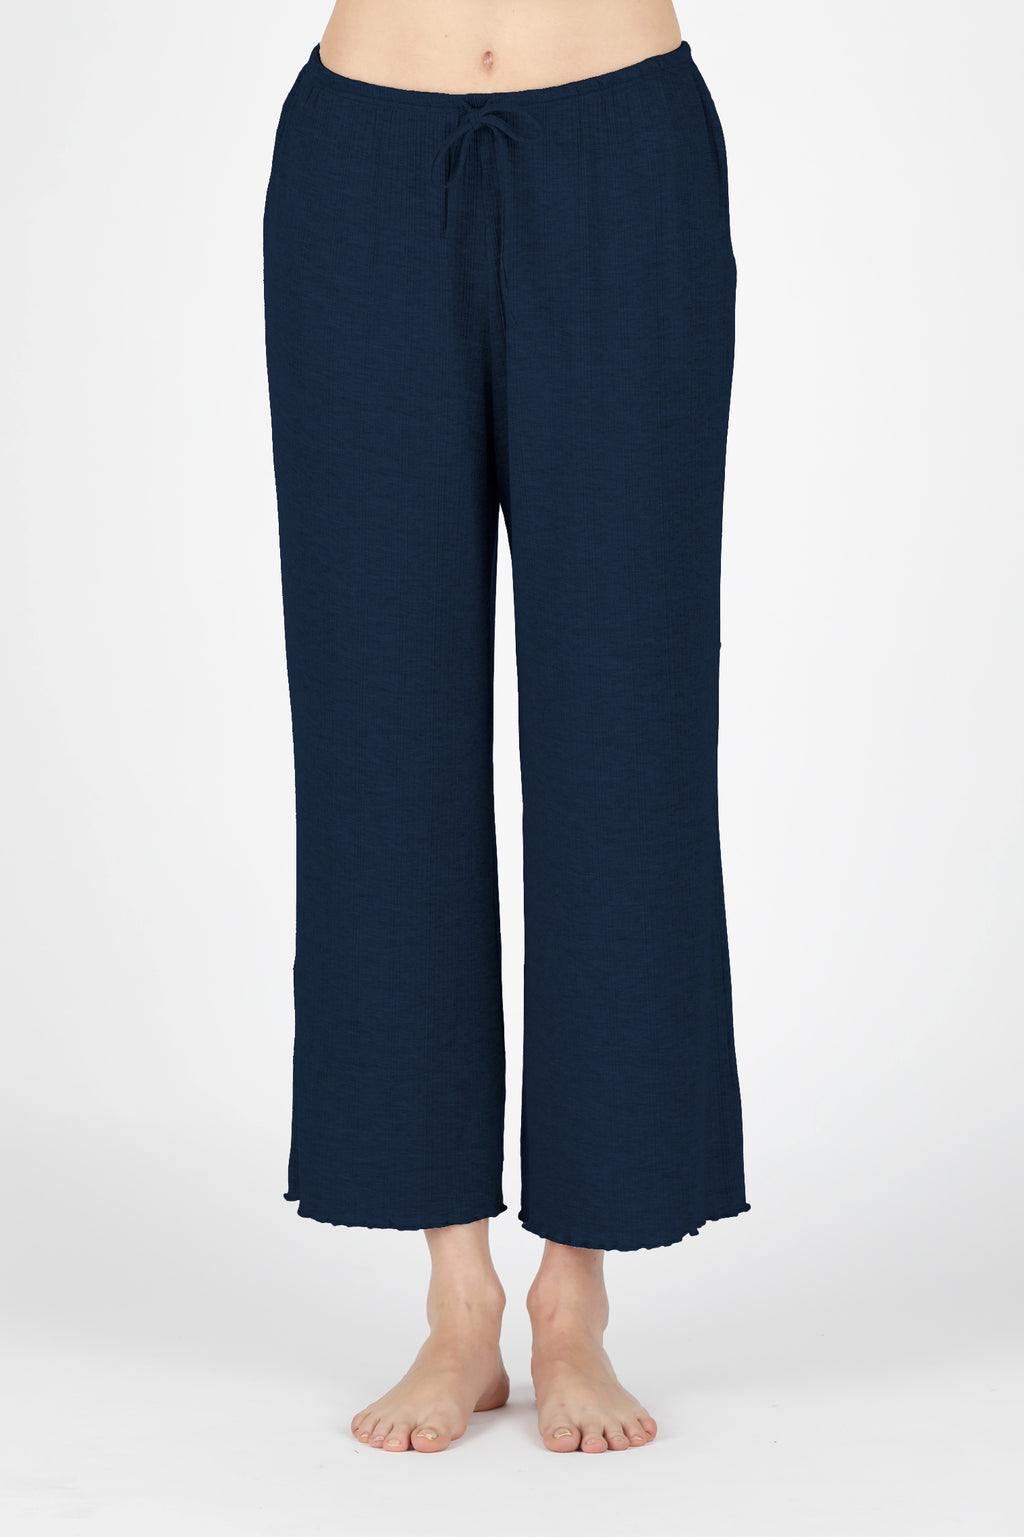 Sustainably Chic Lounging Pant - Navy